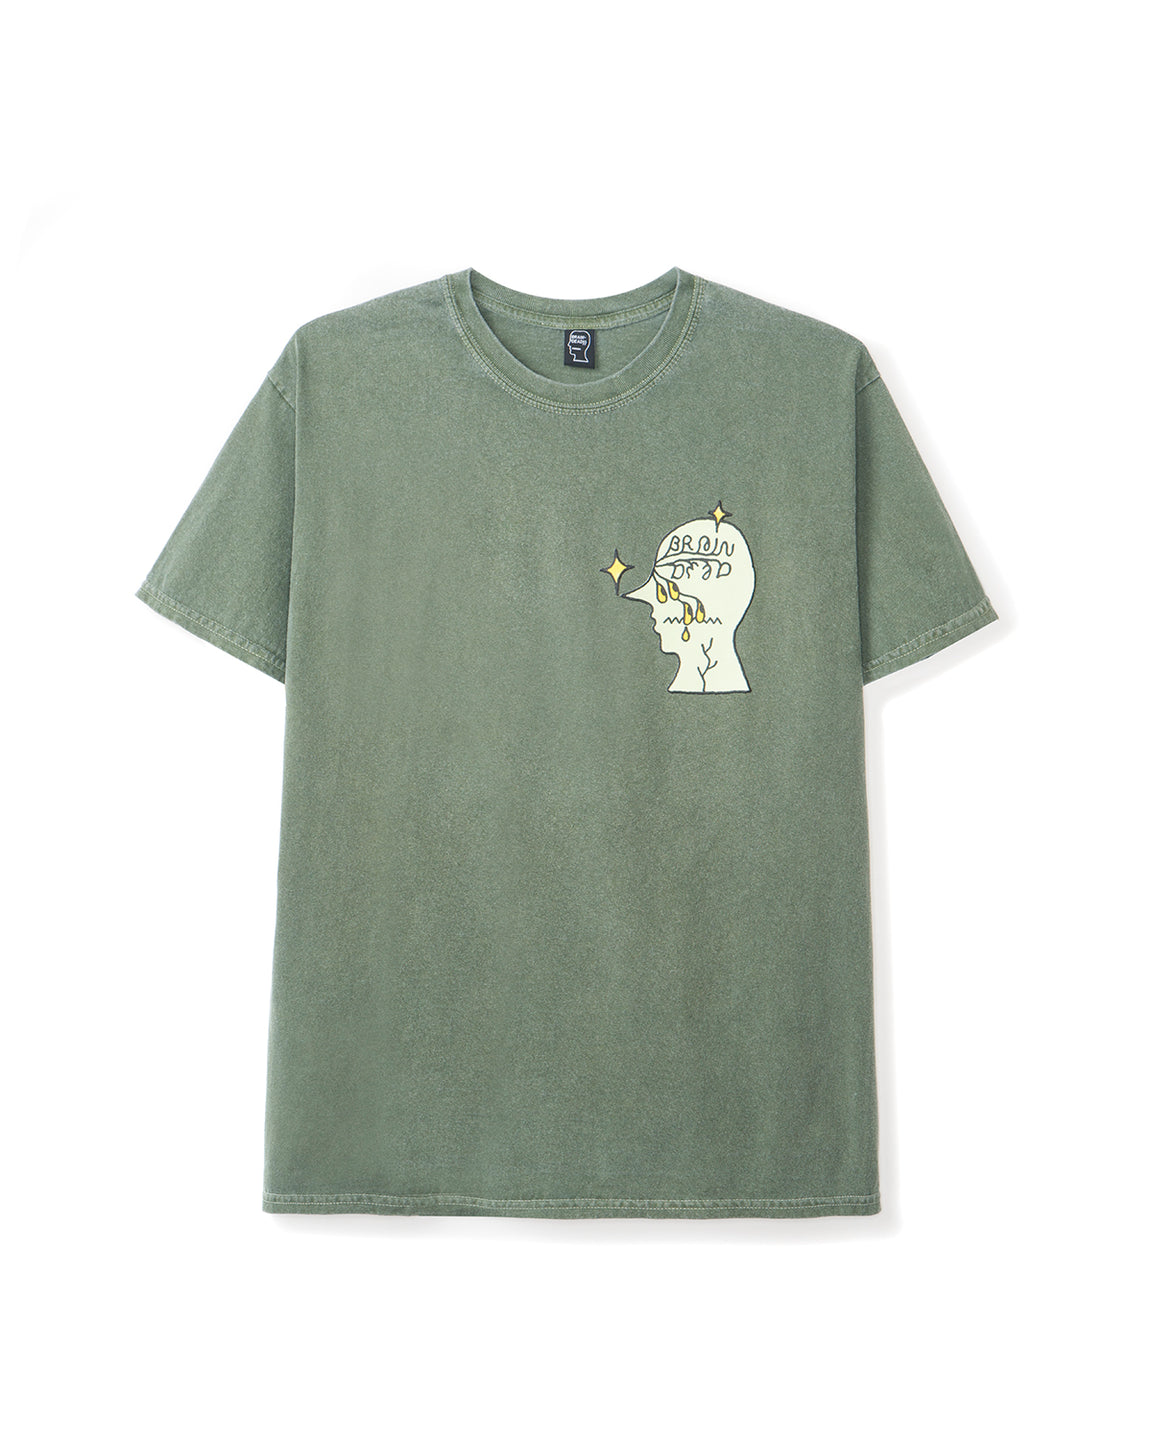 Graffiti Letter T-shirt - Forest Green